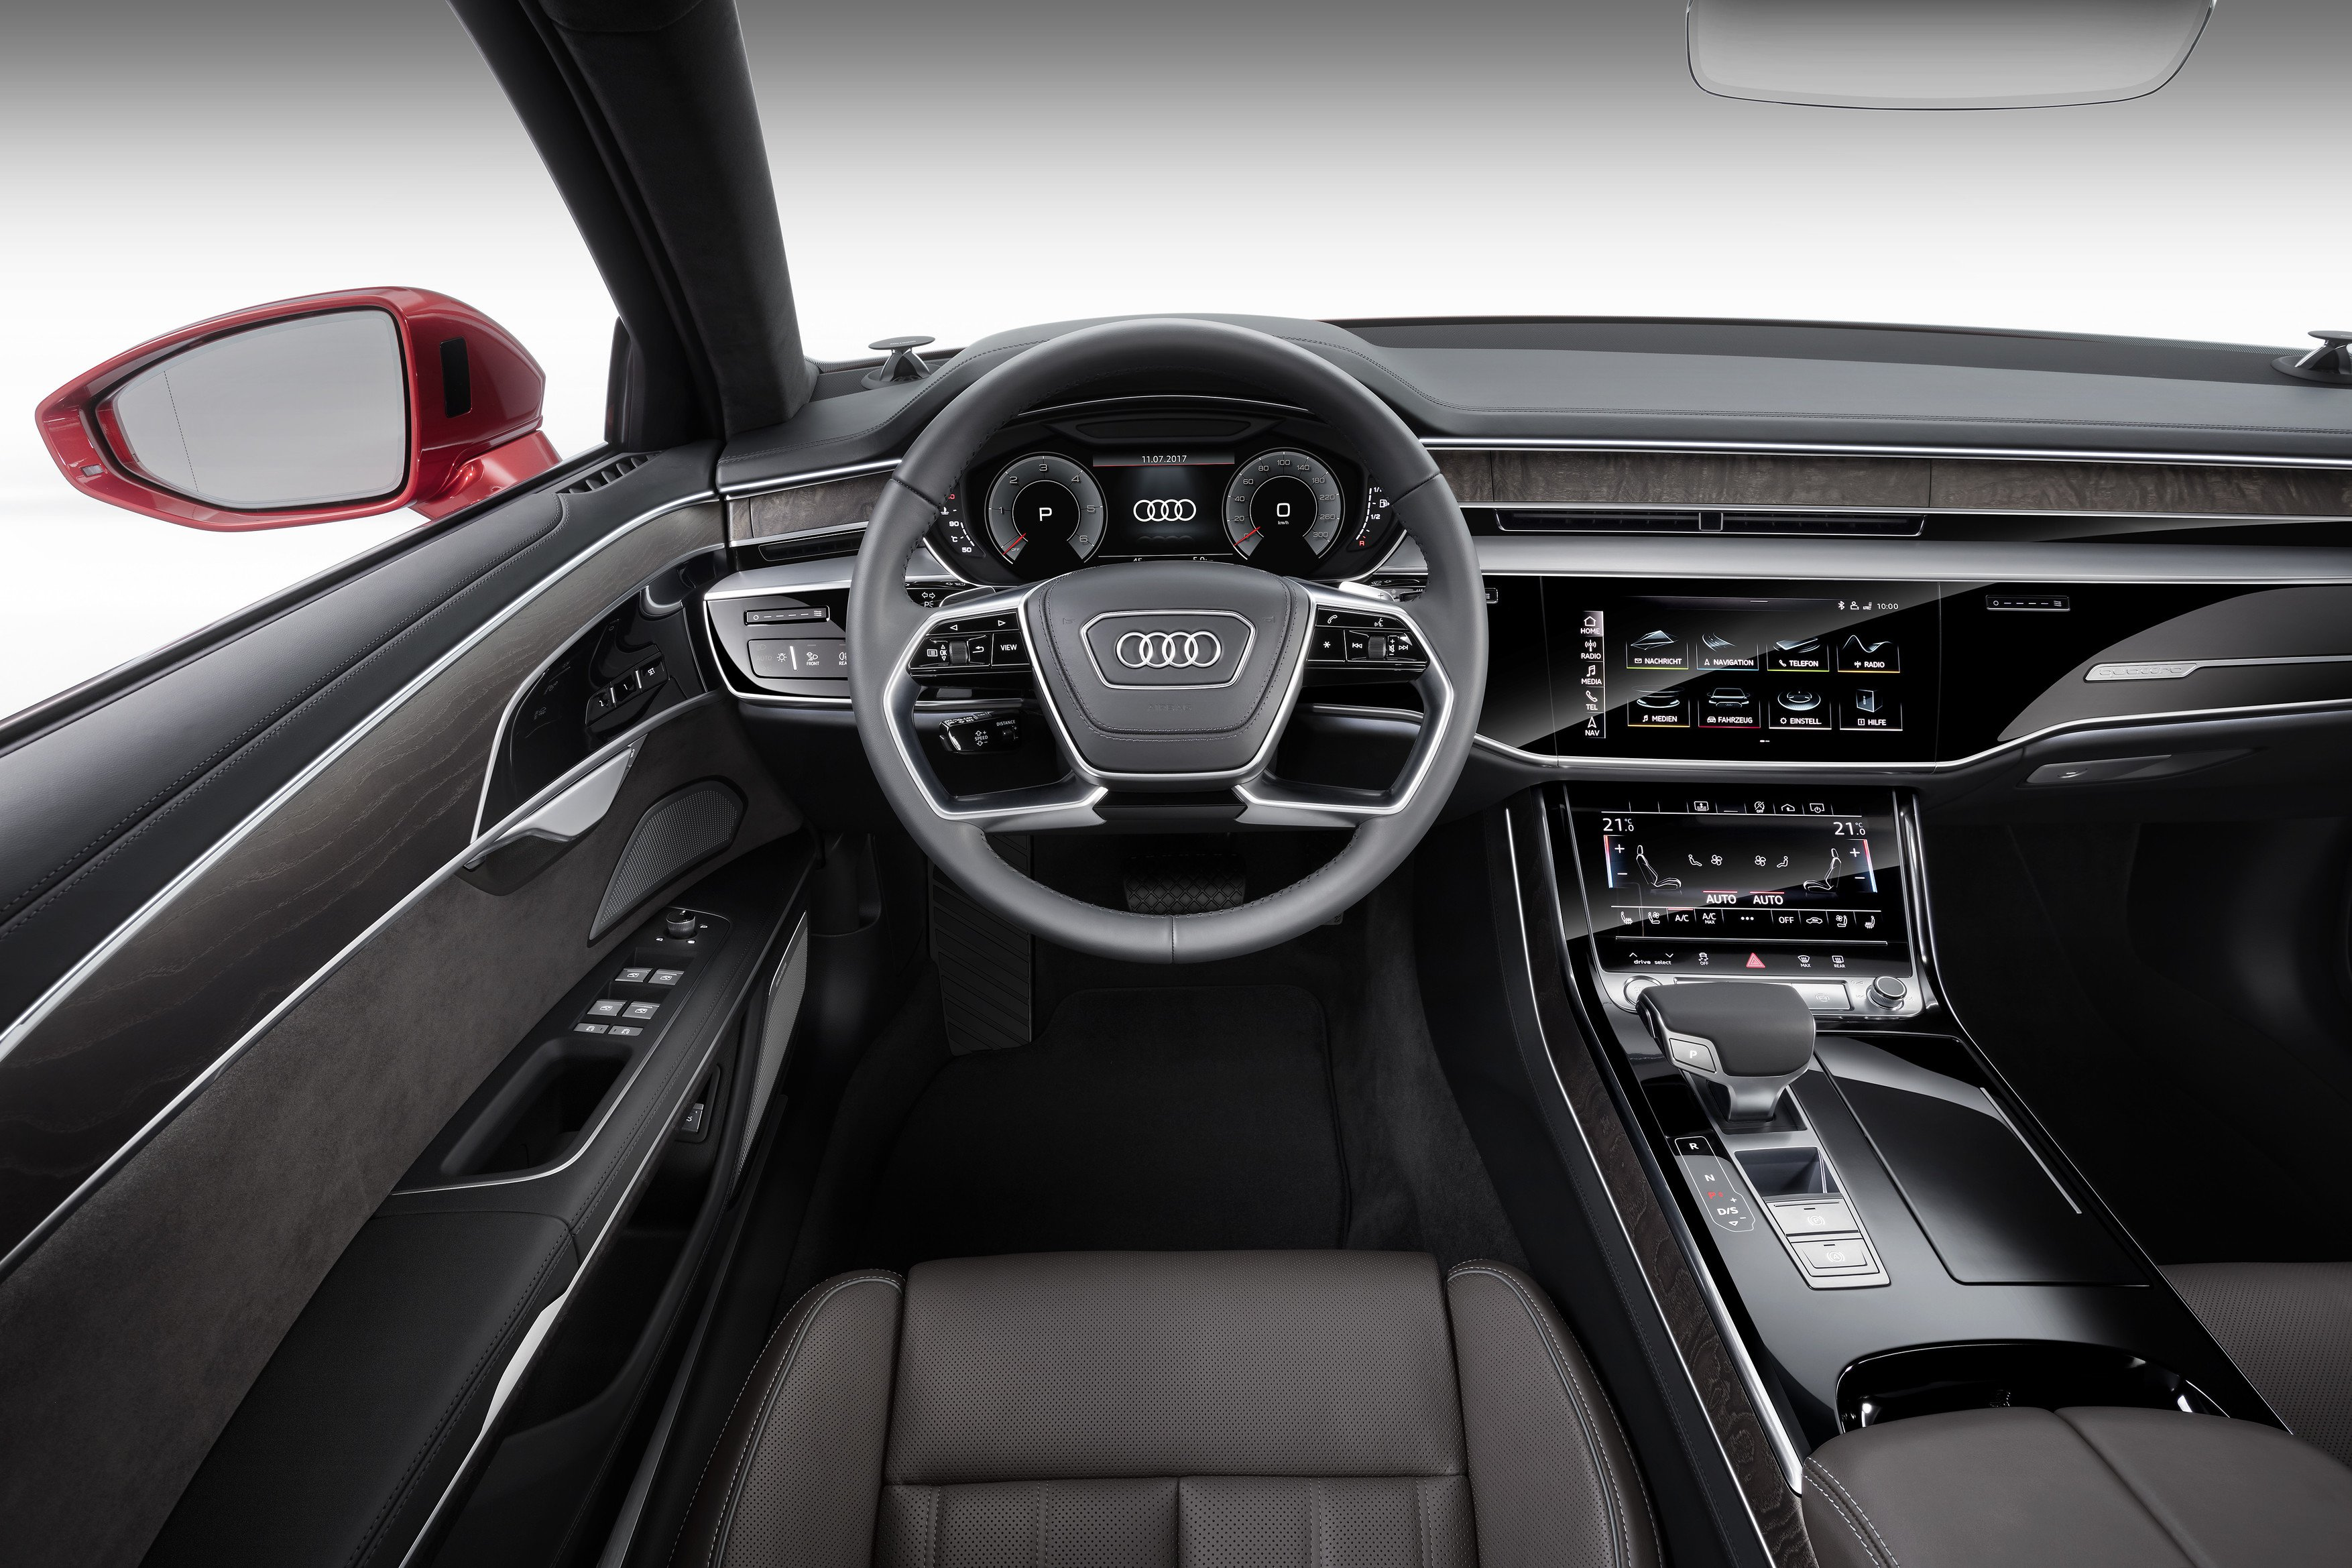 Is The New Audi A8 The Most Technologically Advanced Car Yet? A178305 medium